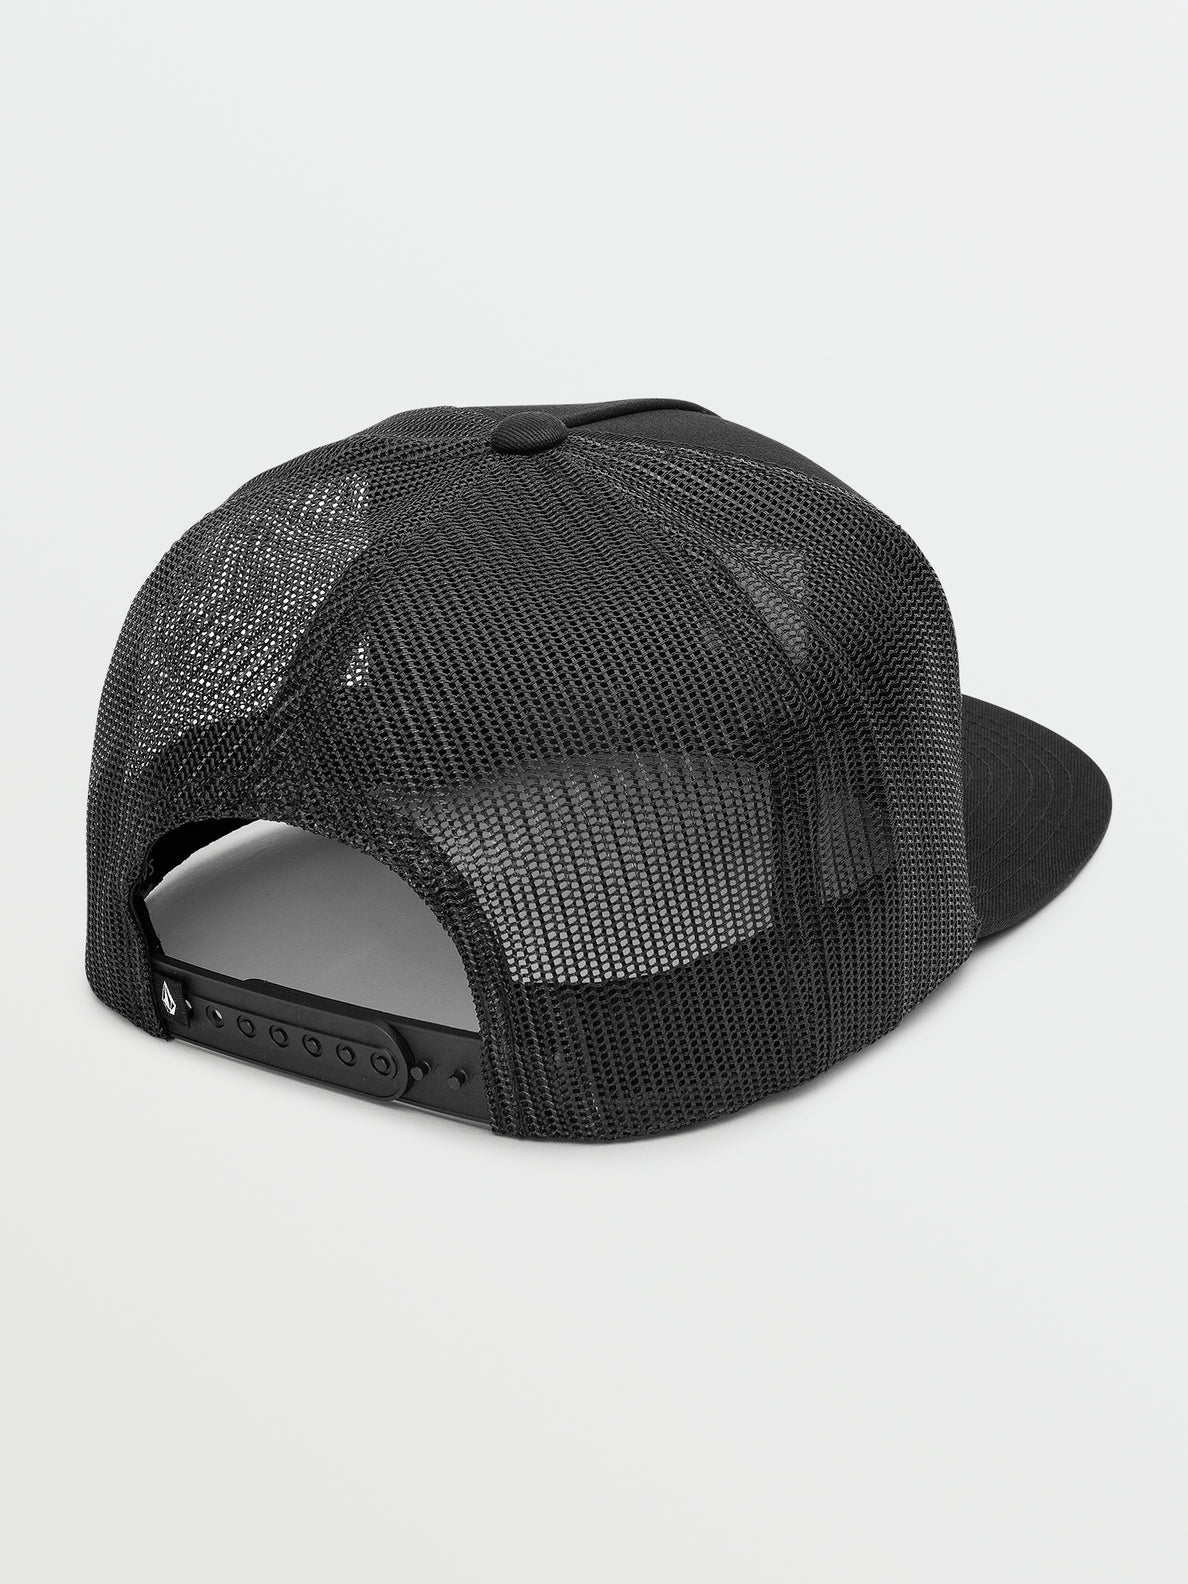 Box Stone Cheese Hat - Black (D5541900_BLK) [B]